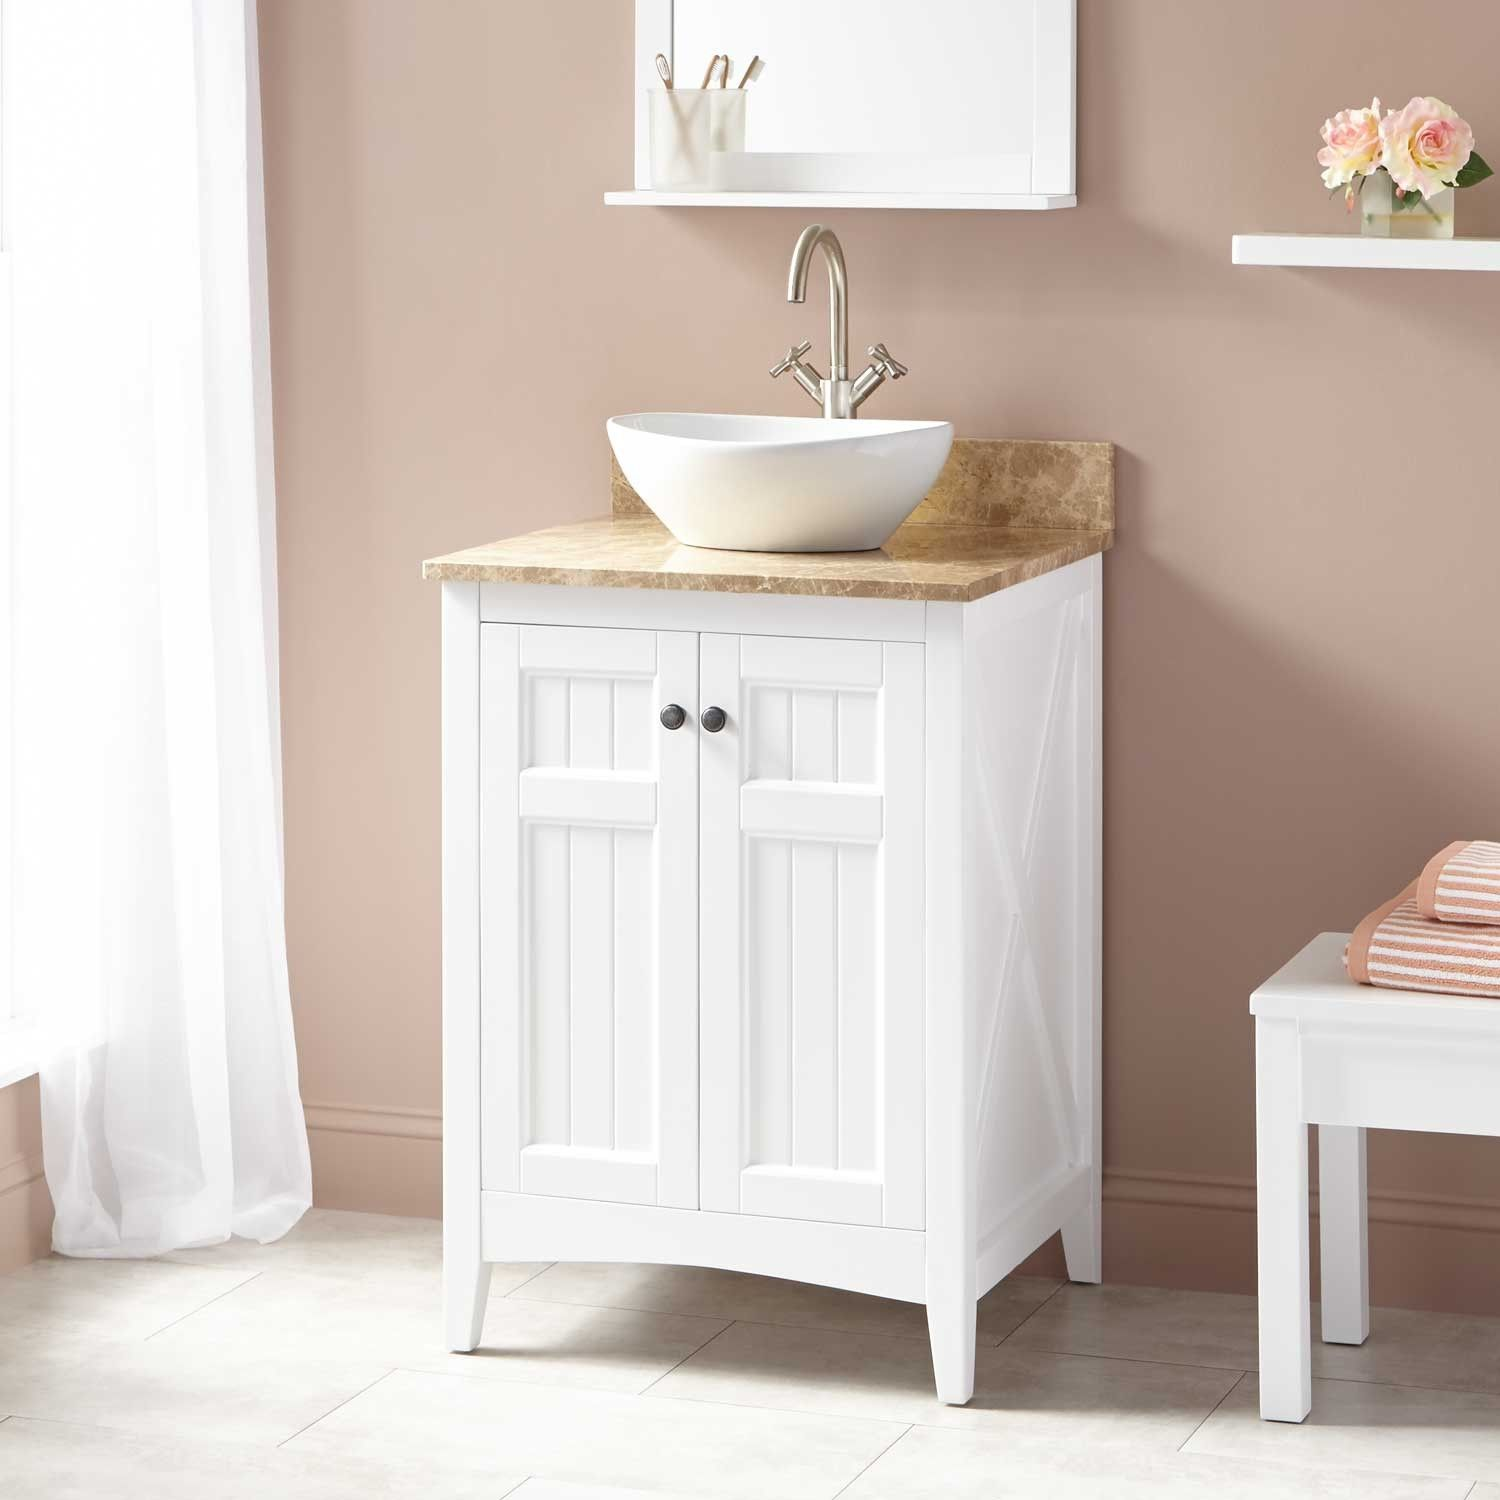 24 Alvelo Vessel Sink Vanity White In 2019